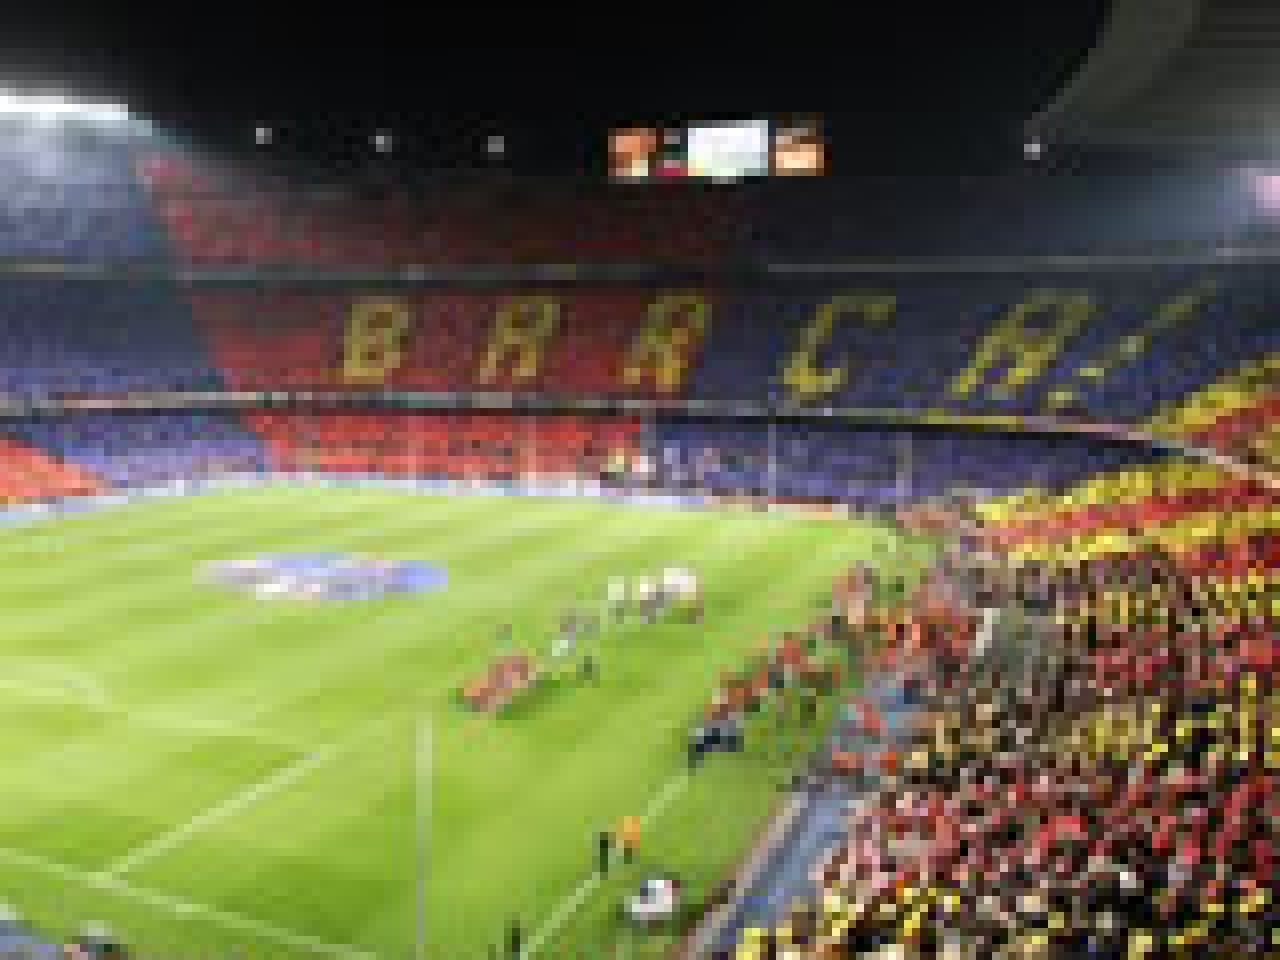 FC Barcelona Hotel and Match Ticket Packages